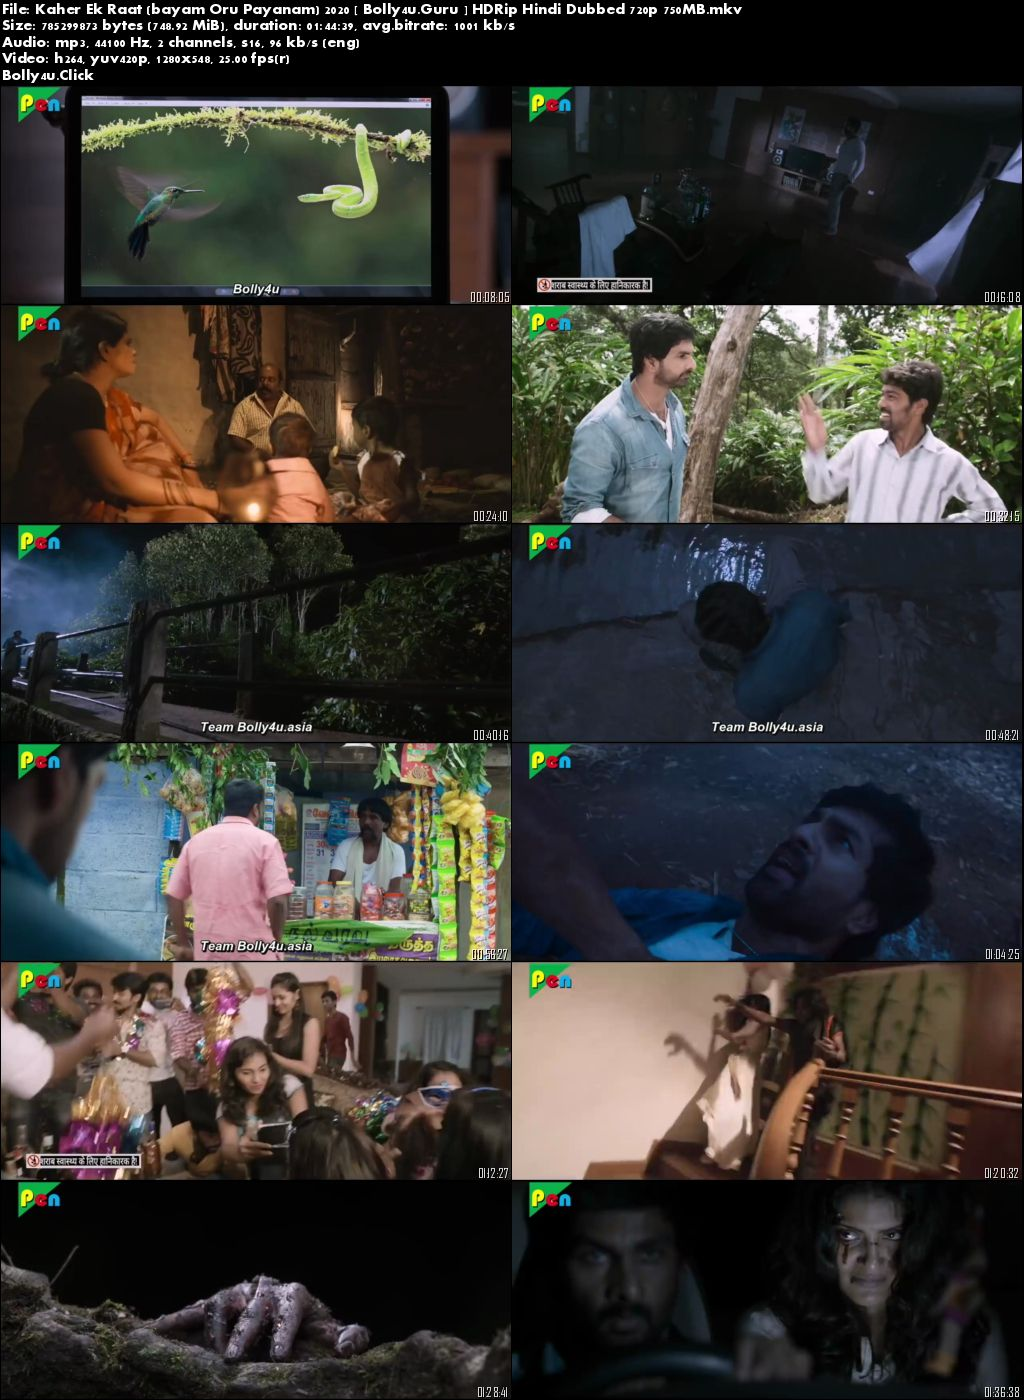 Kaher Ek Raat 2020 HDRip 300MB Hindi Dubbed 480p Download